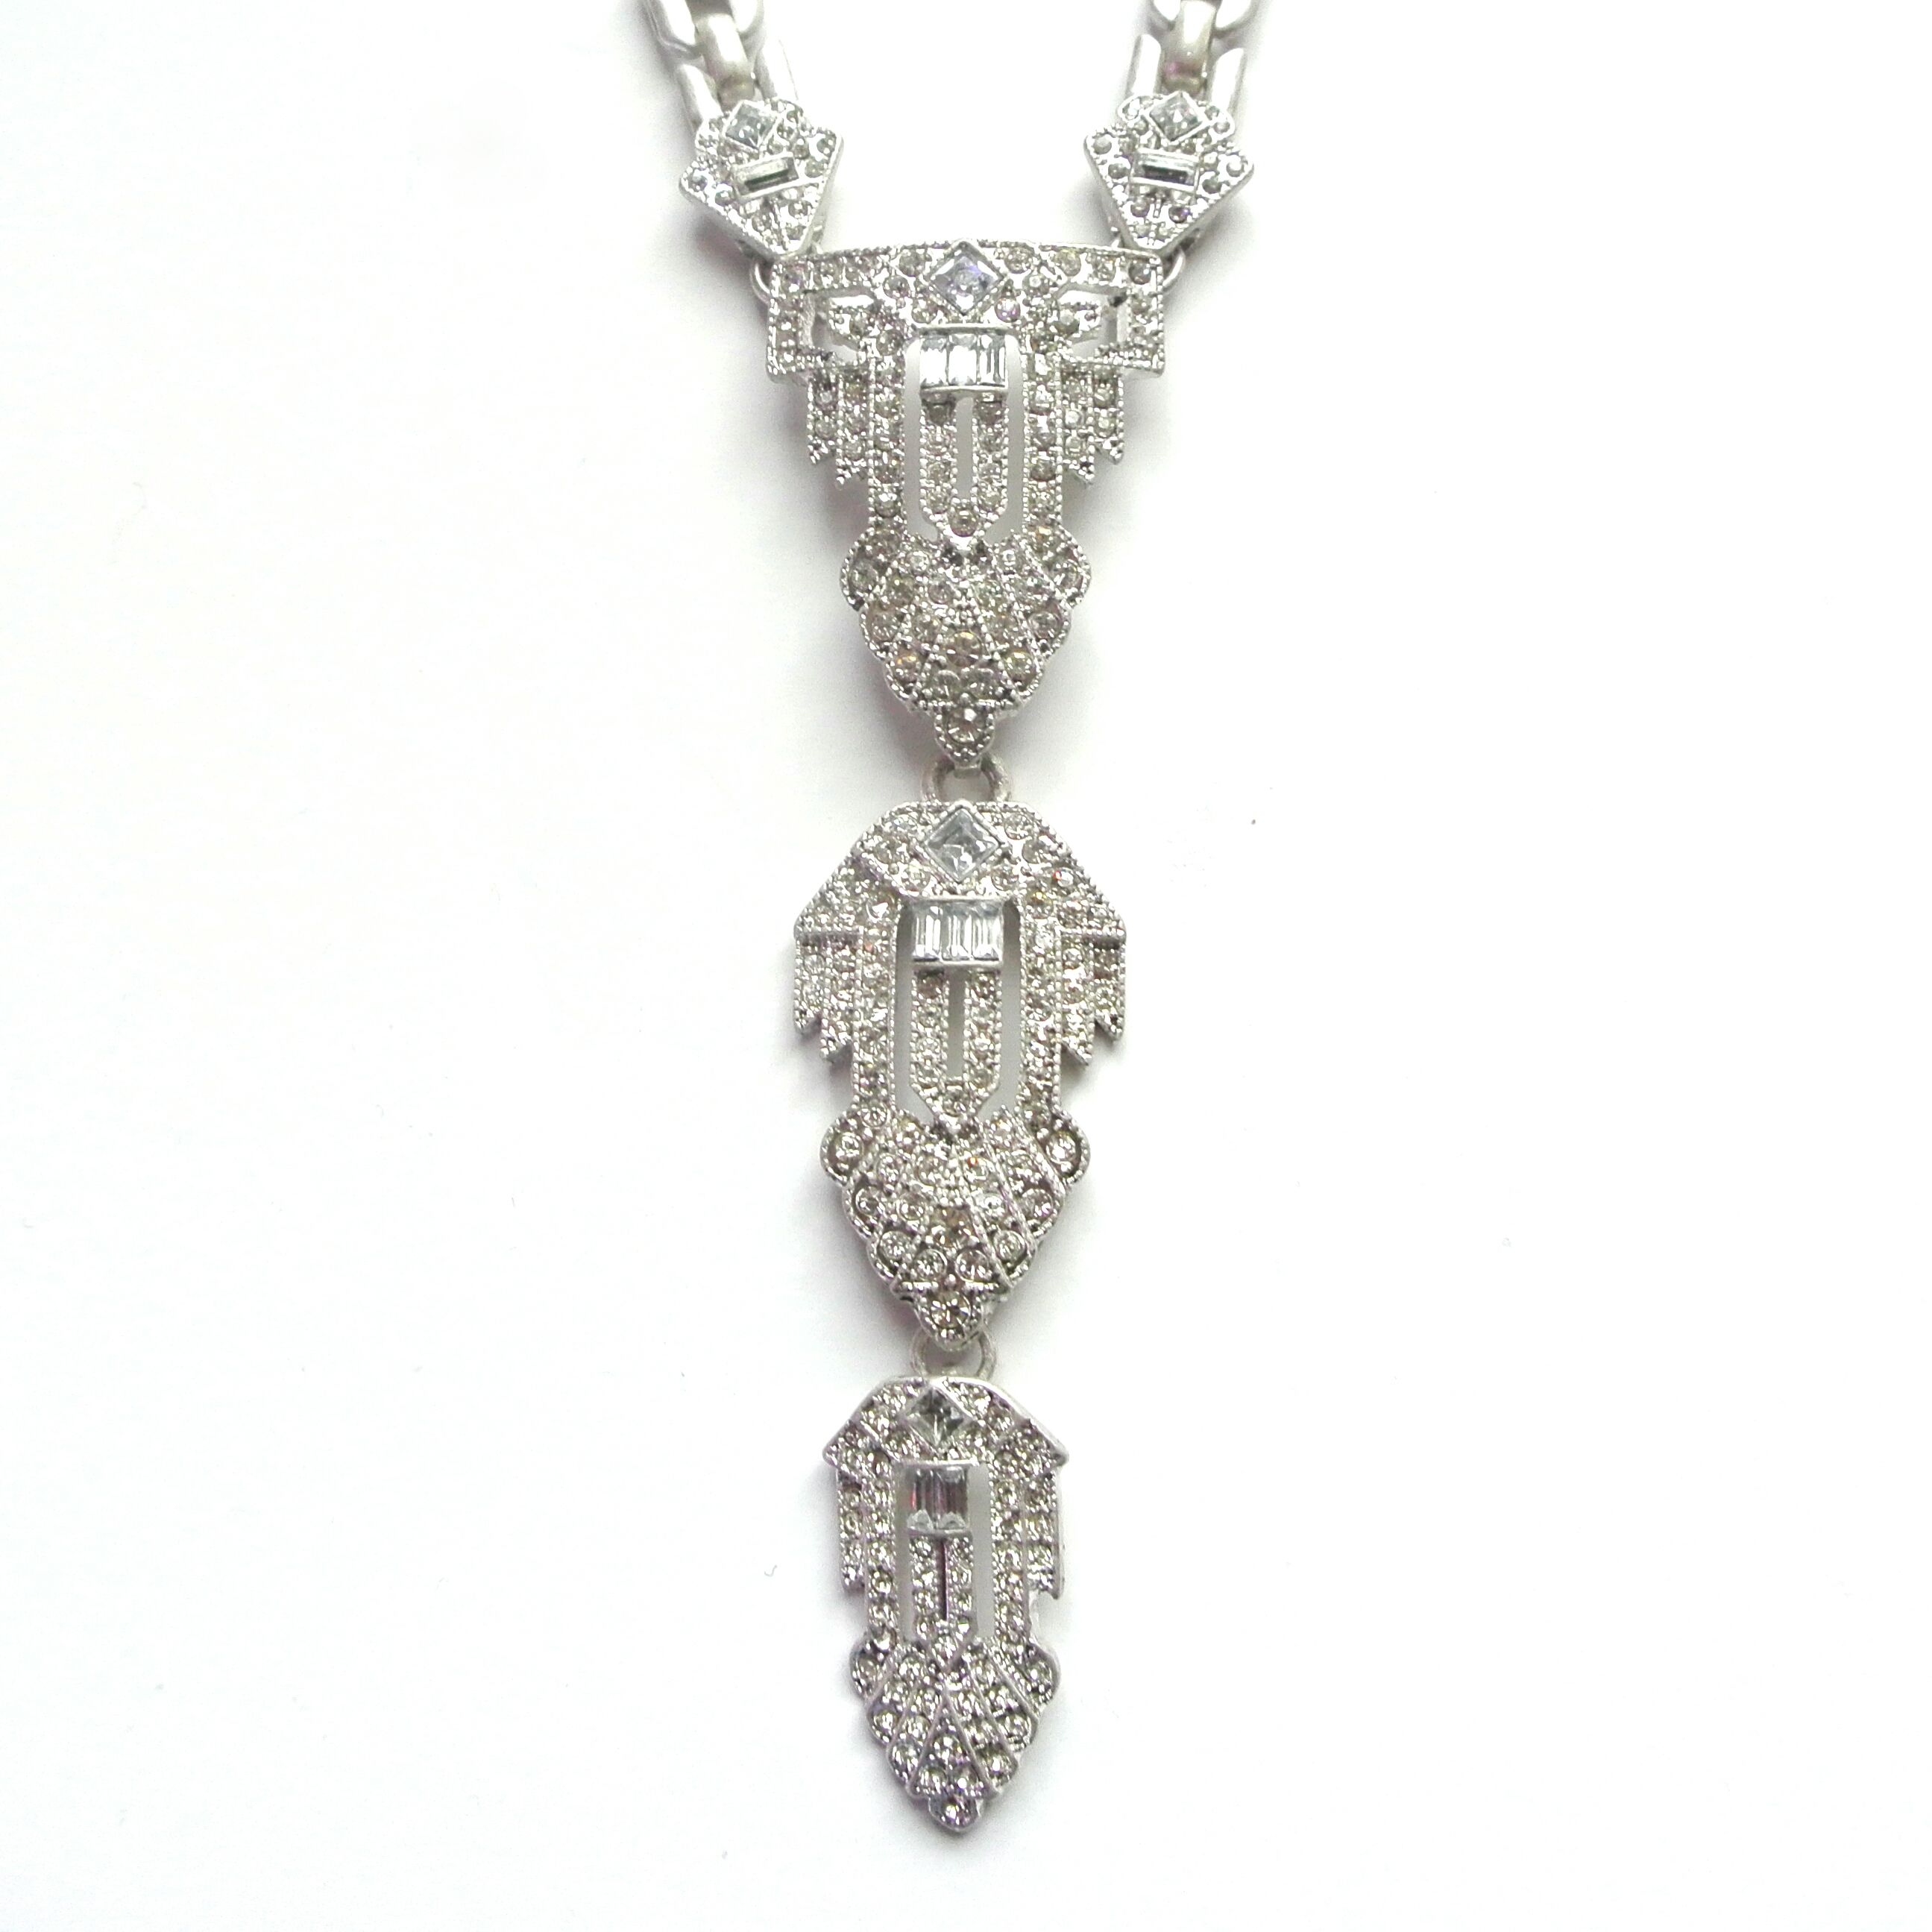 Art Deco Style Jewelry Boxes Art Deco Style Necklace With Crystal Encrusted Pendant Perfect